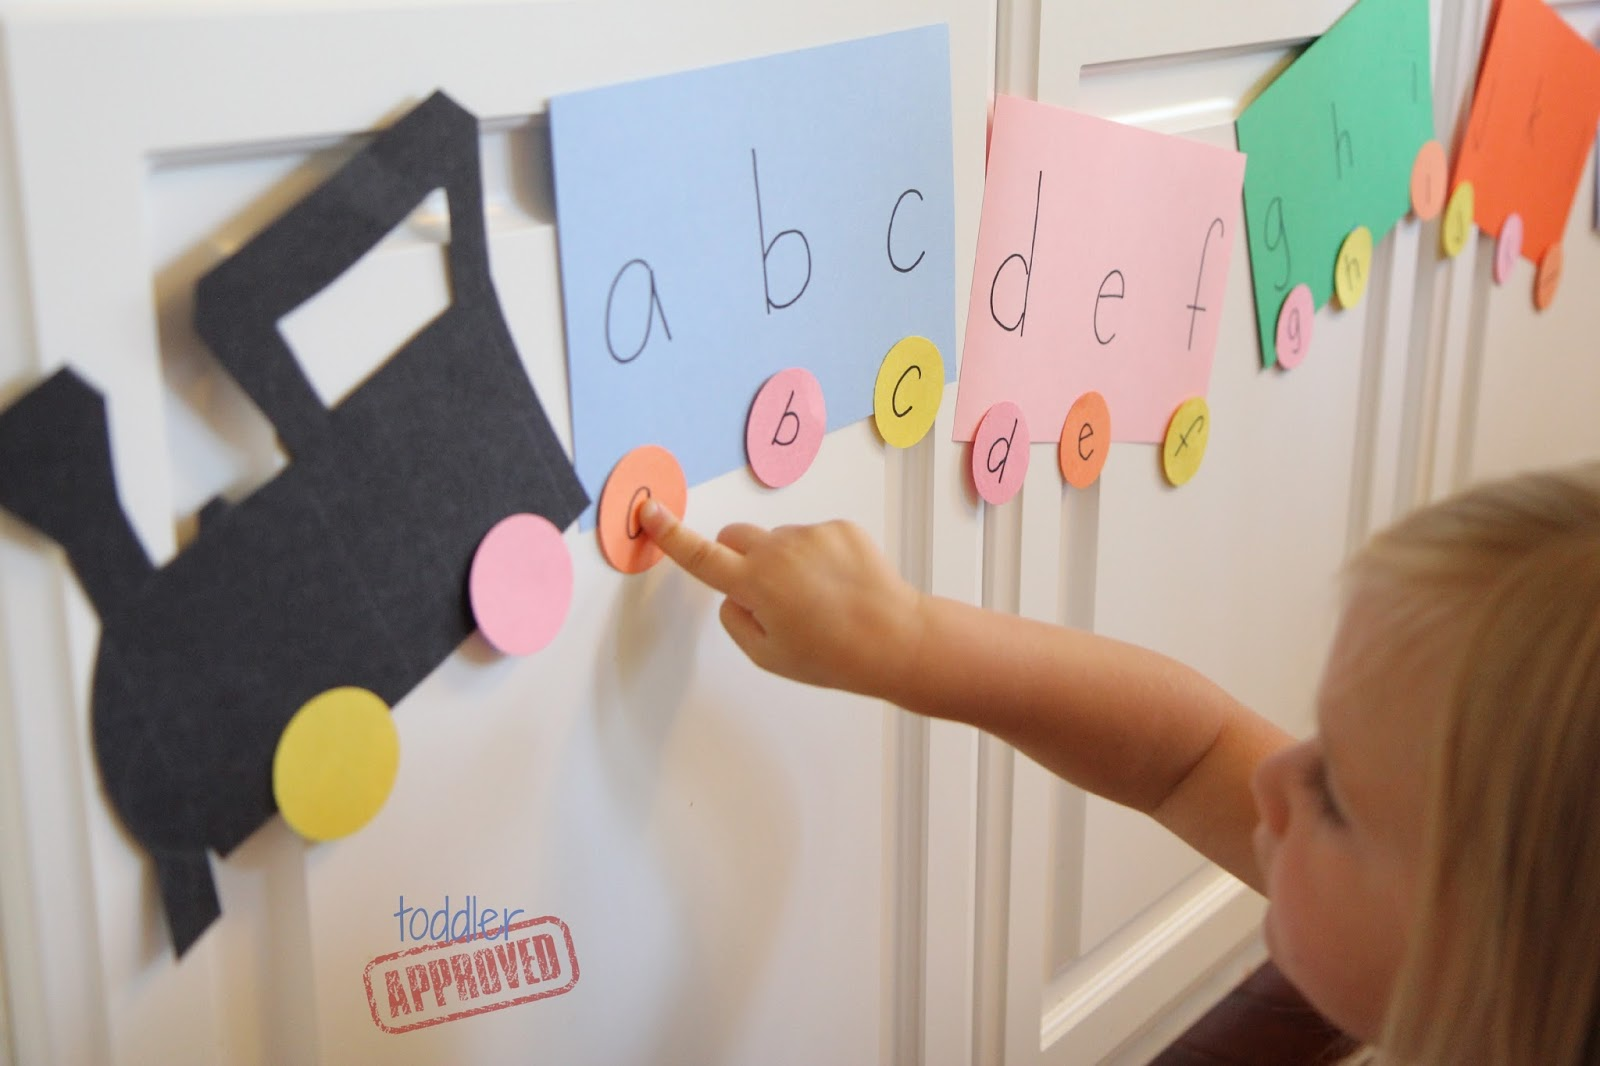 toddler approved alphabet train matching activity for kids